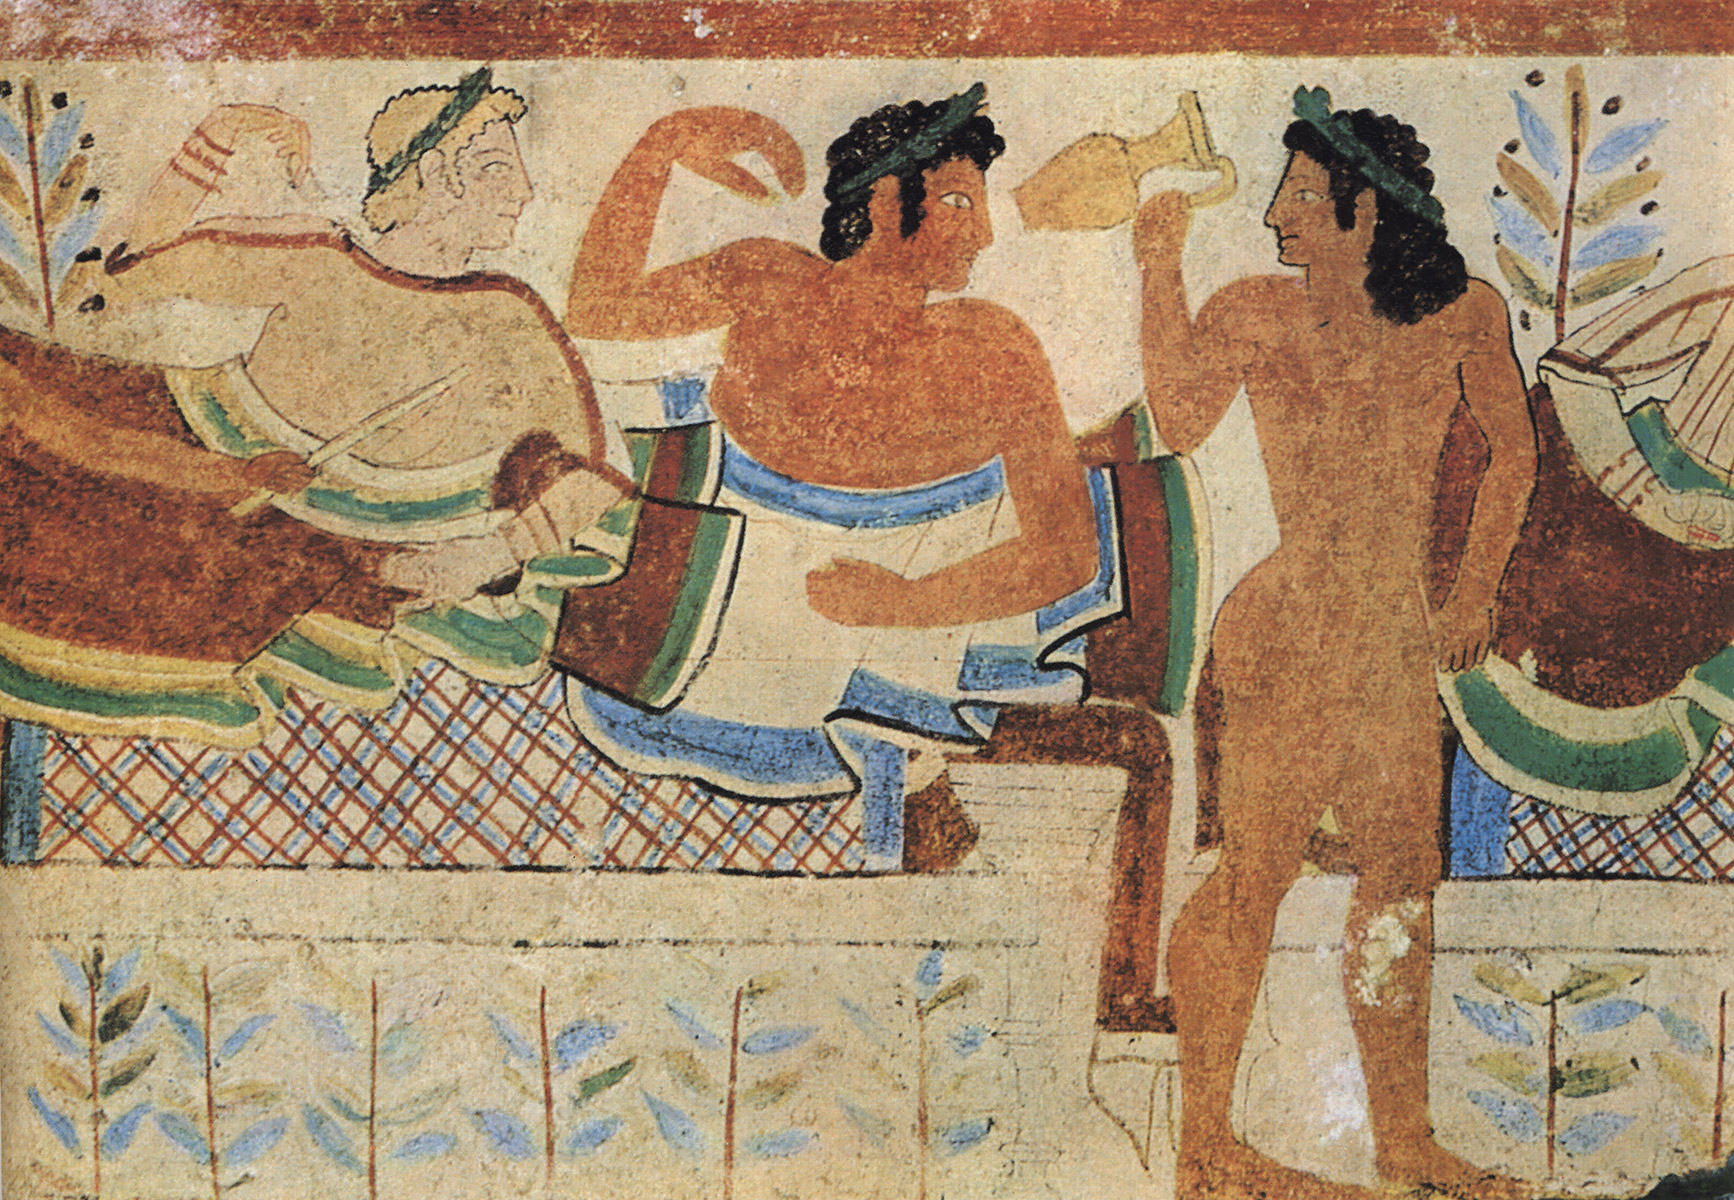 Feast scene. Detail. 5th century BCE. Tarquinia, Tomb of the Leopards